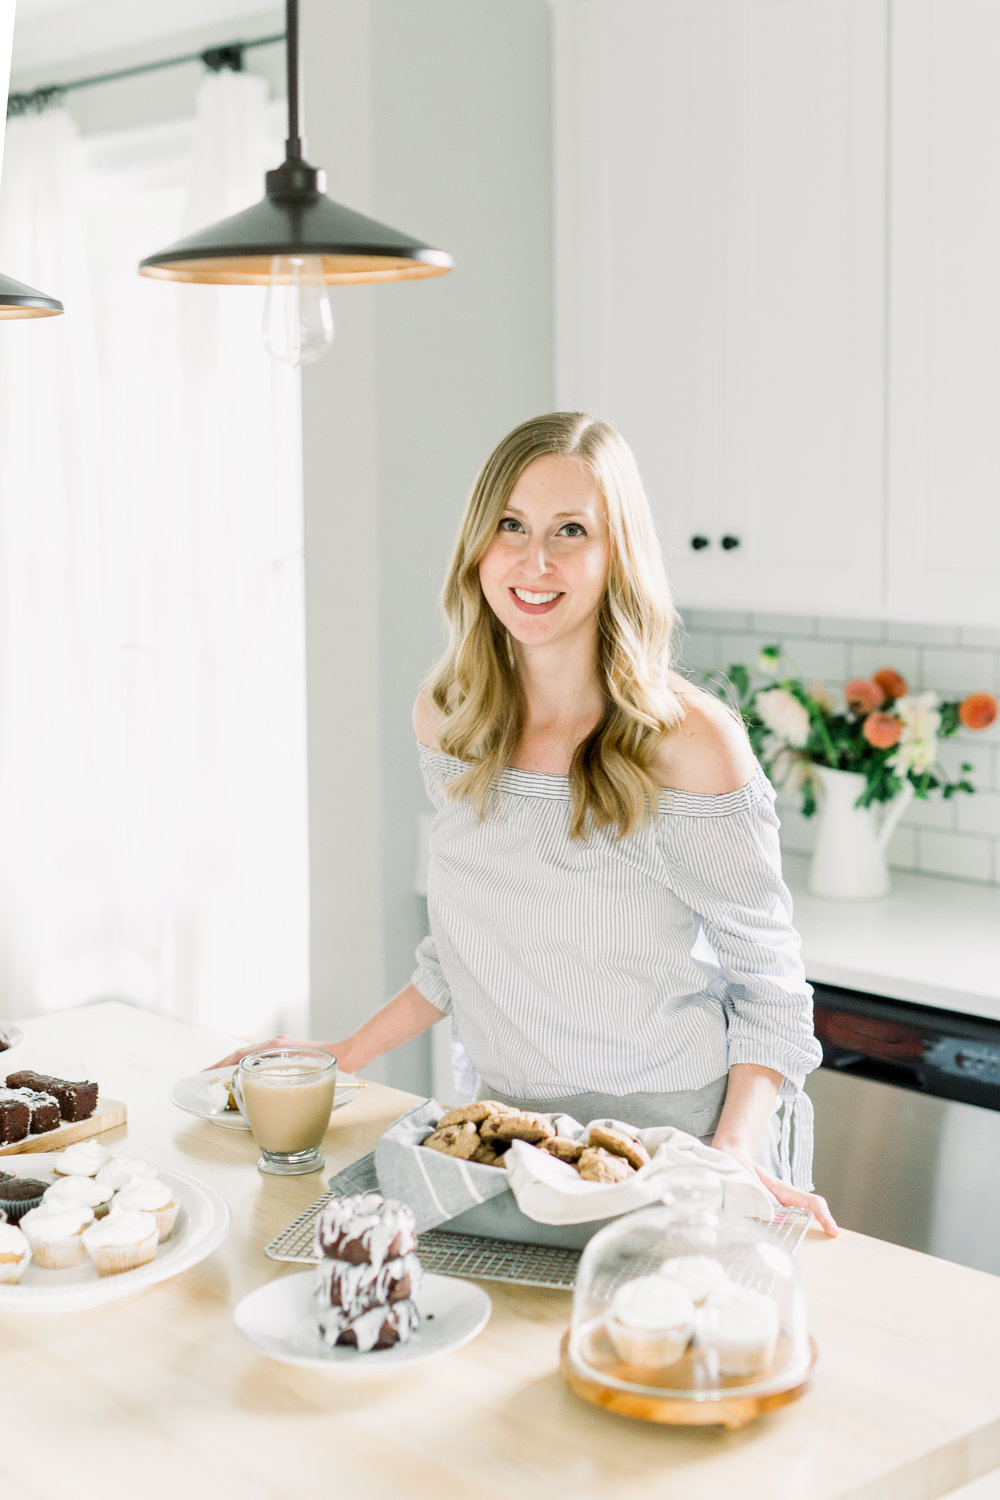 Welcome! - I'm Sarah Blackburn….I am married to my best friend of 6 years and have been a SAHM to our 4 yo son and 1 yo daughter. They have been the best built-in taste testers over the years!